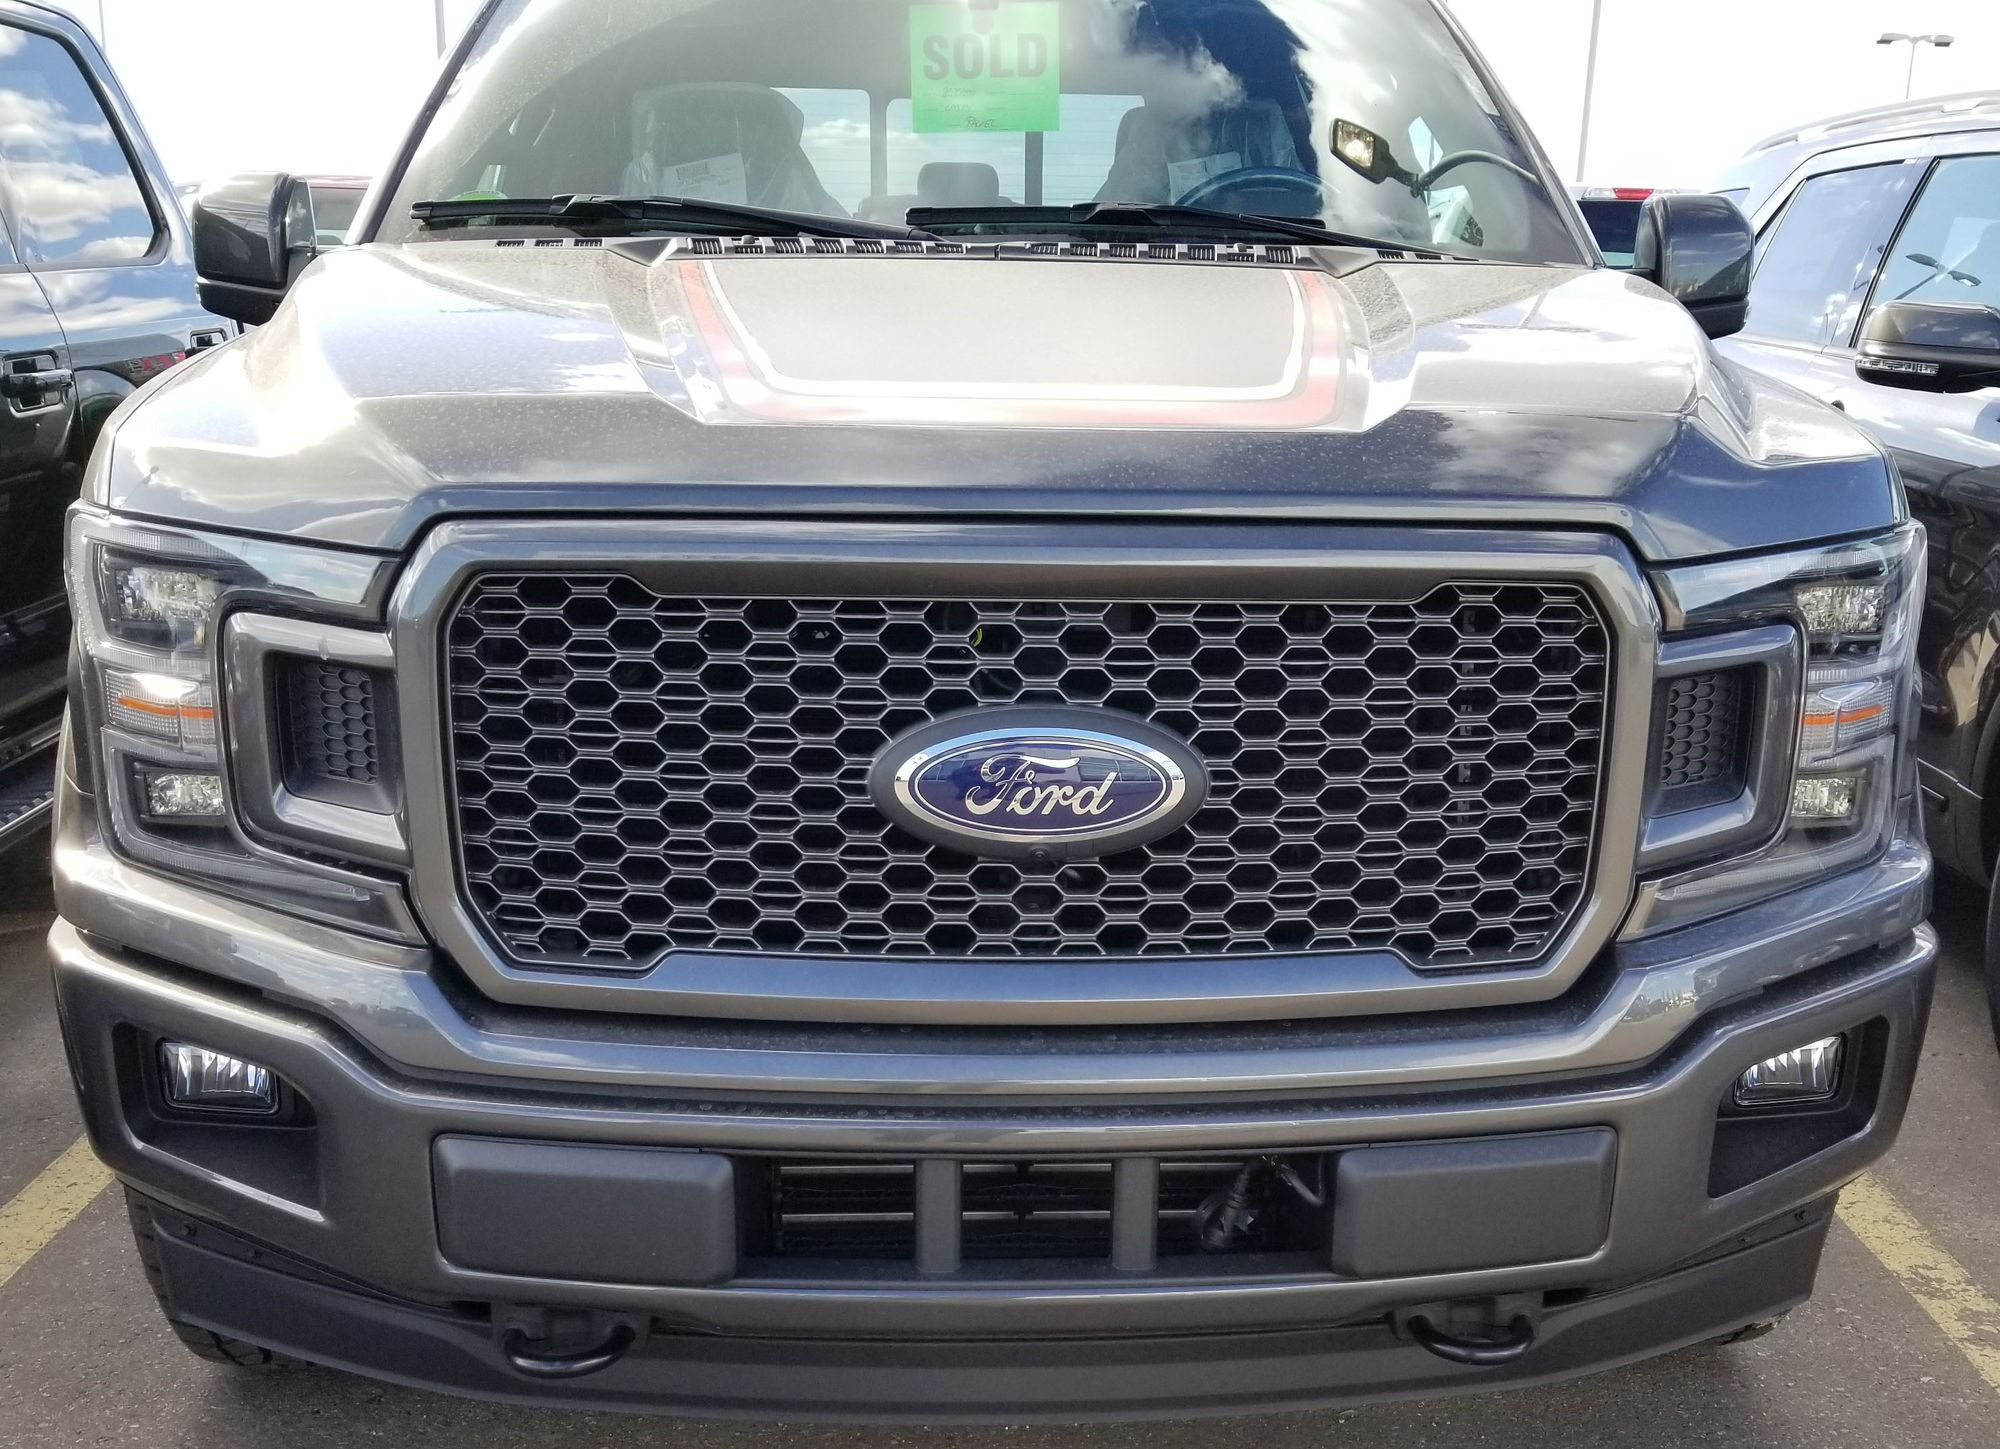 Official 2018 Grille Replacement Thread - Page 20 - Ford ...